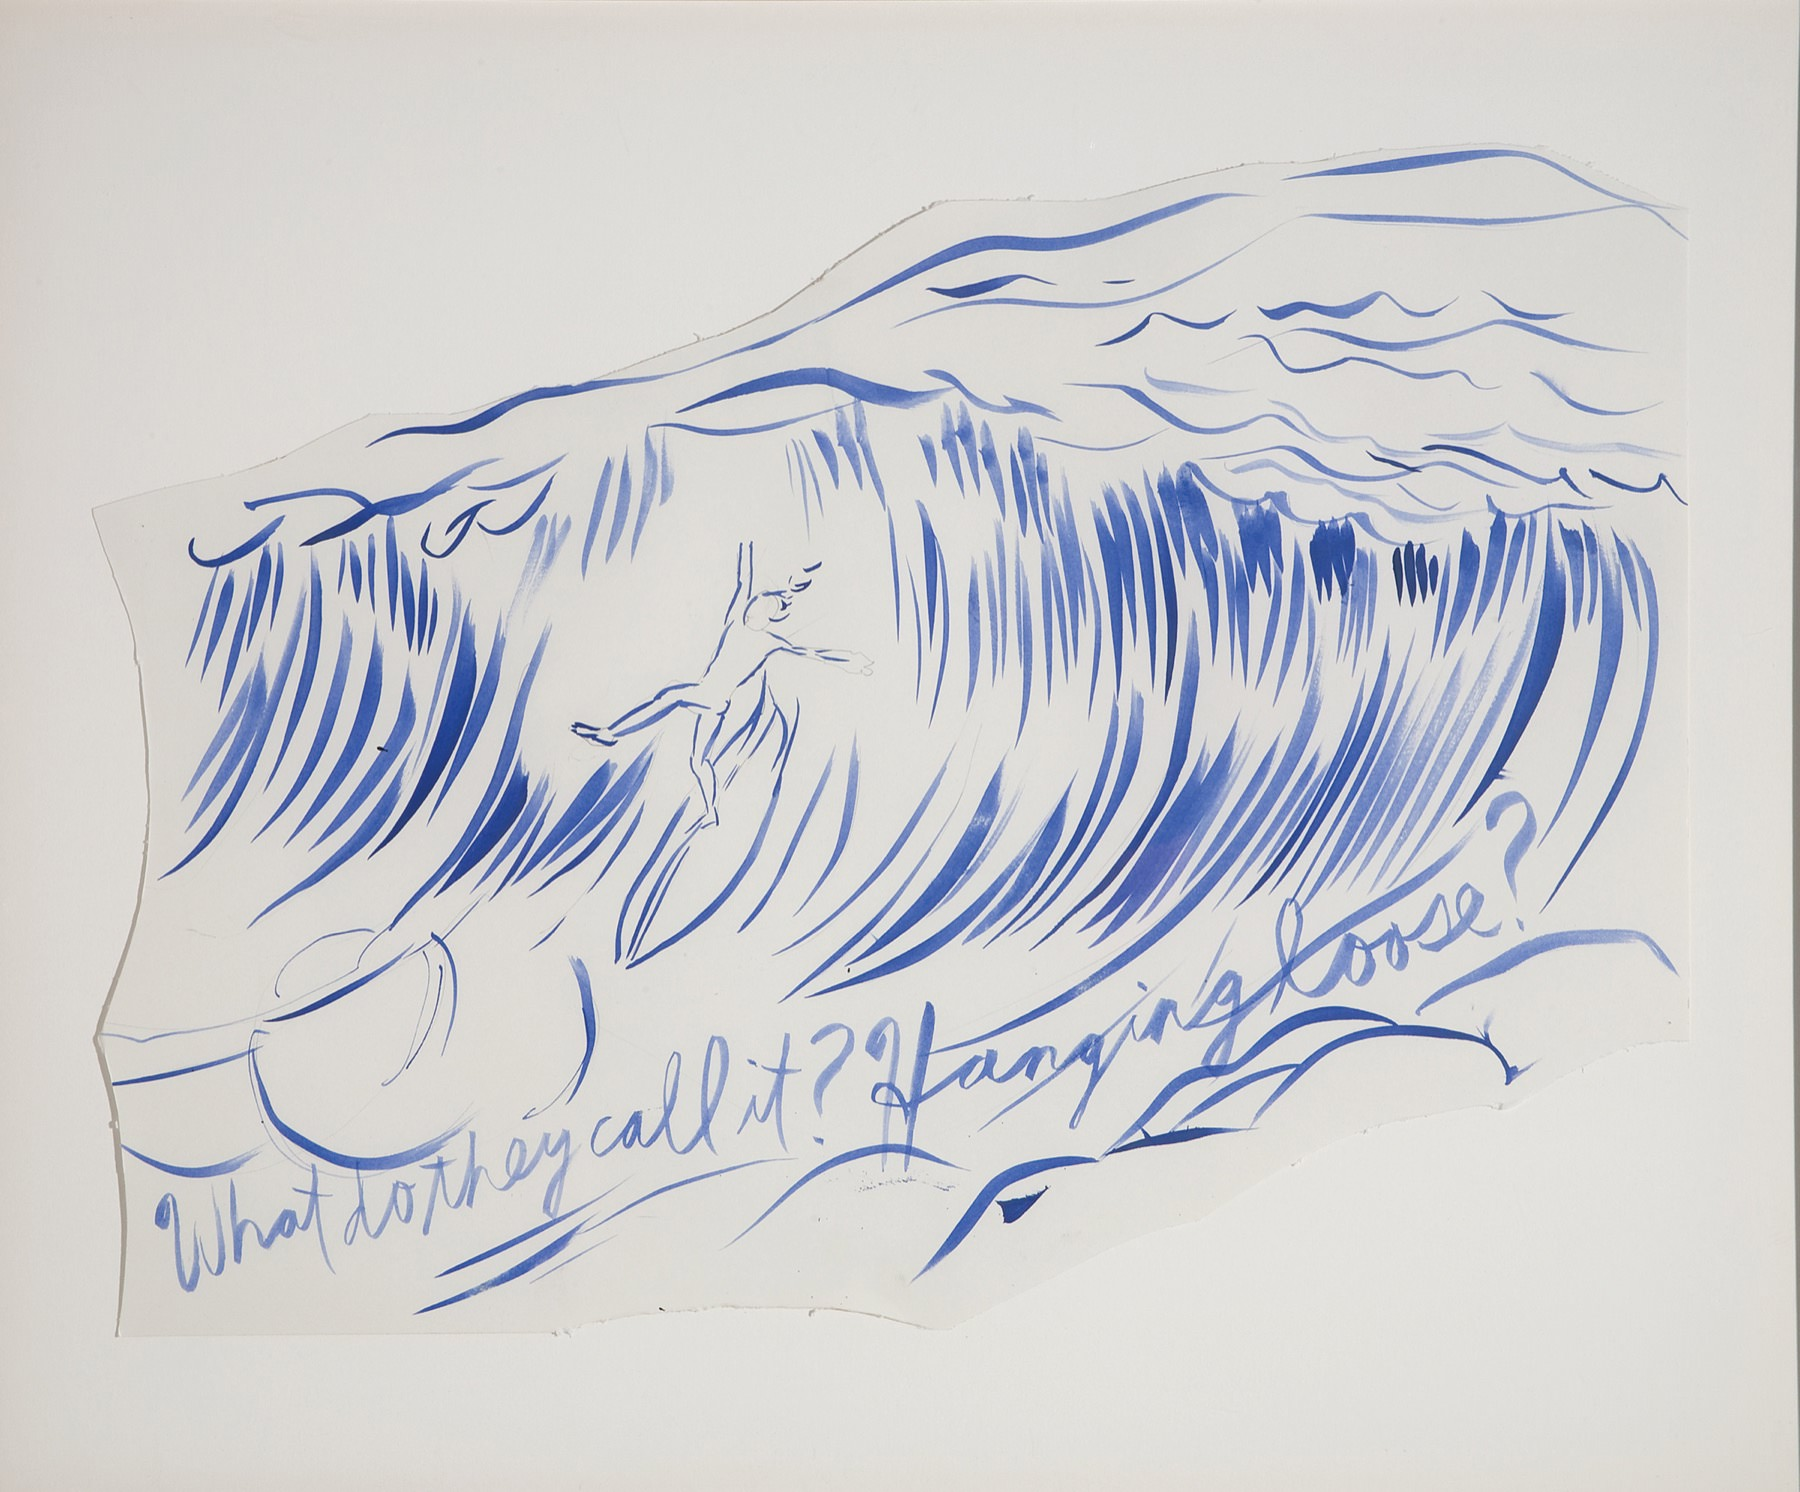 Image of Raymond Pettibon, Untitled (Why do they call it hanging ten?), 2003